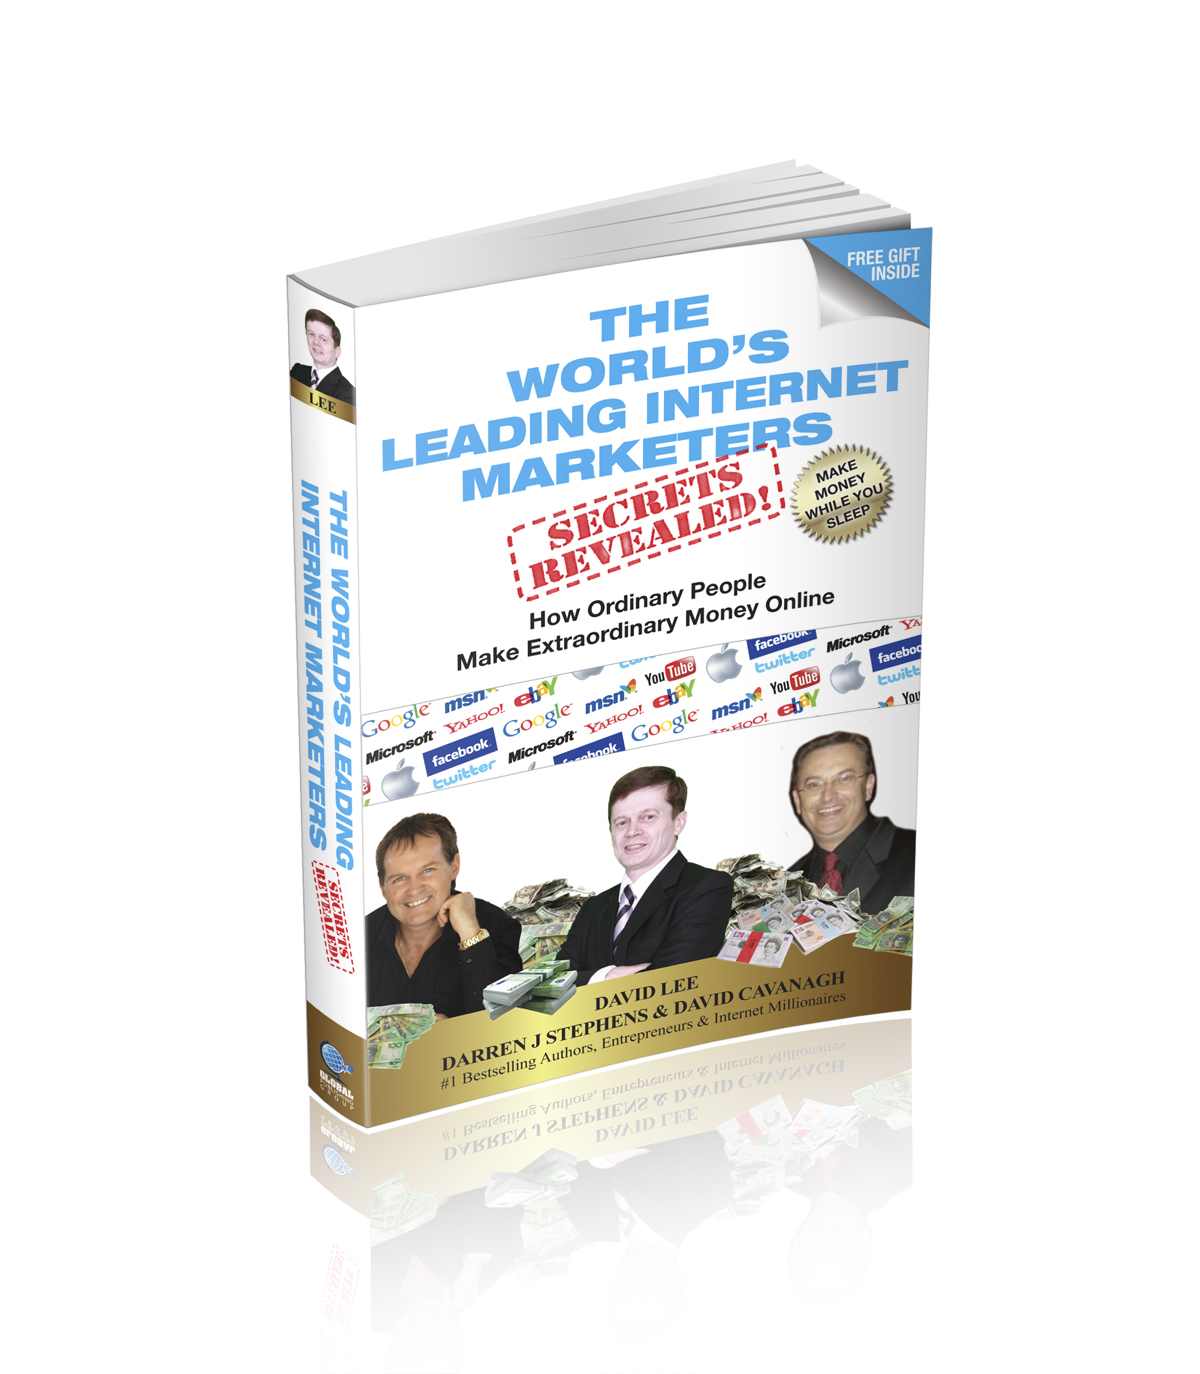 The World's Leading Internet Marketers Secrets Revealed book cover